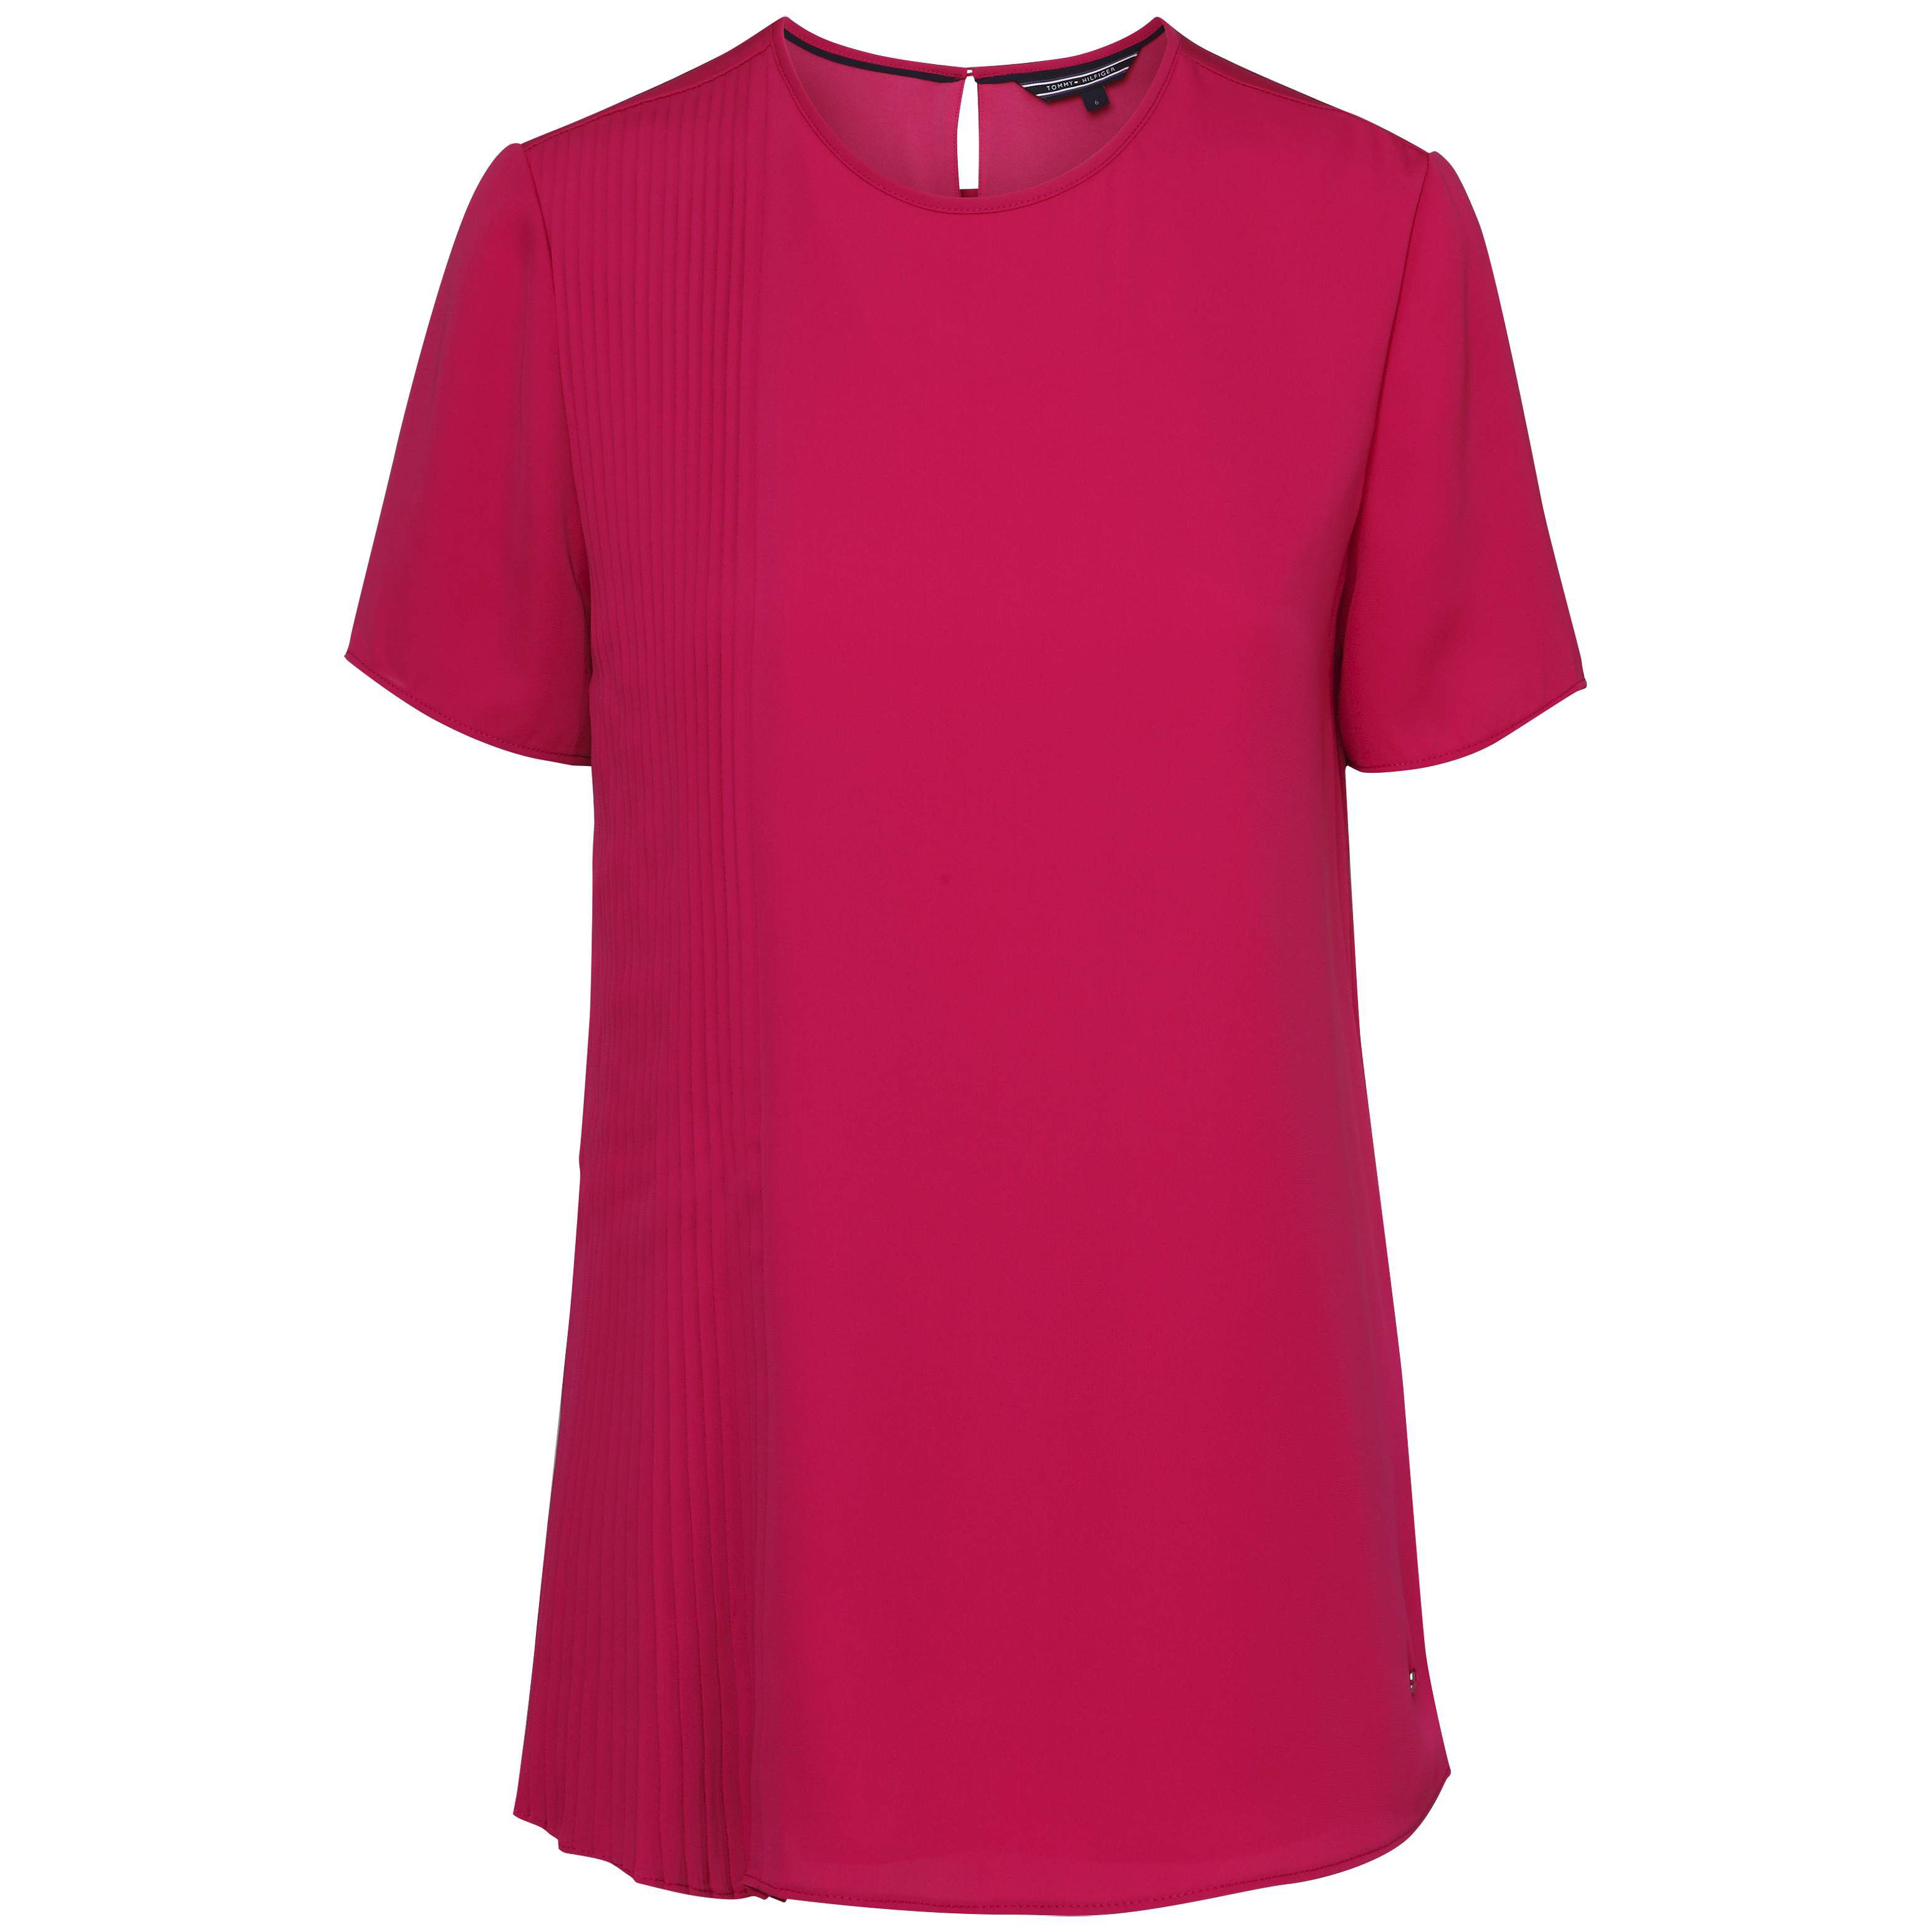 Tommy Hilfiger Nalise Pleated Short Sleeve Top, Pink